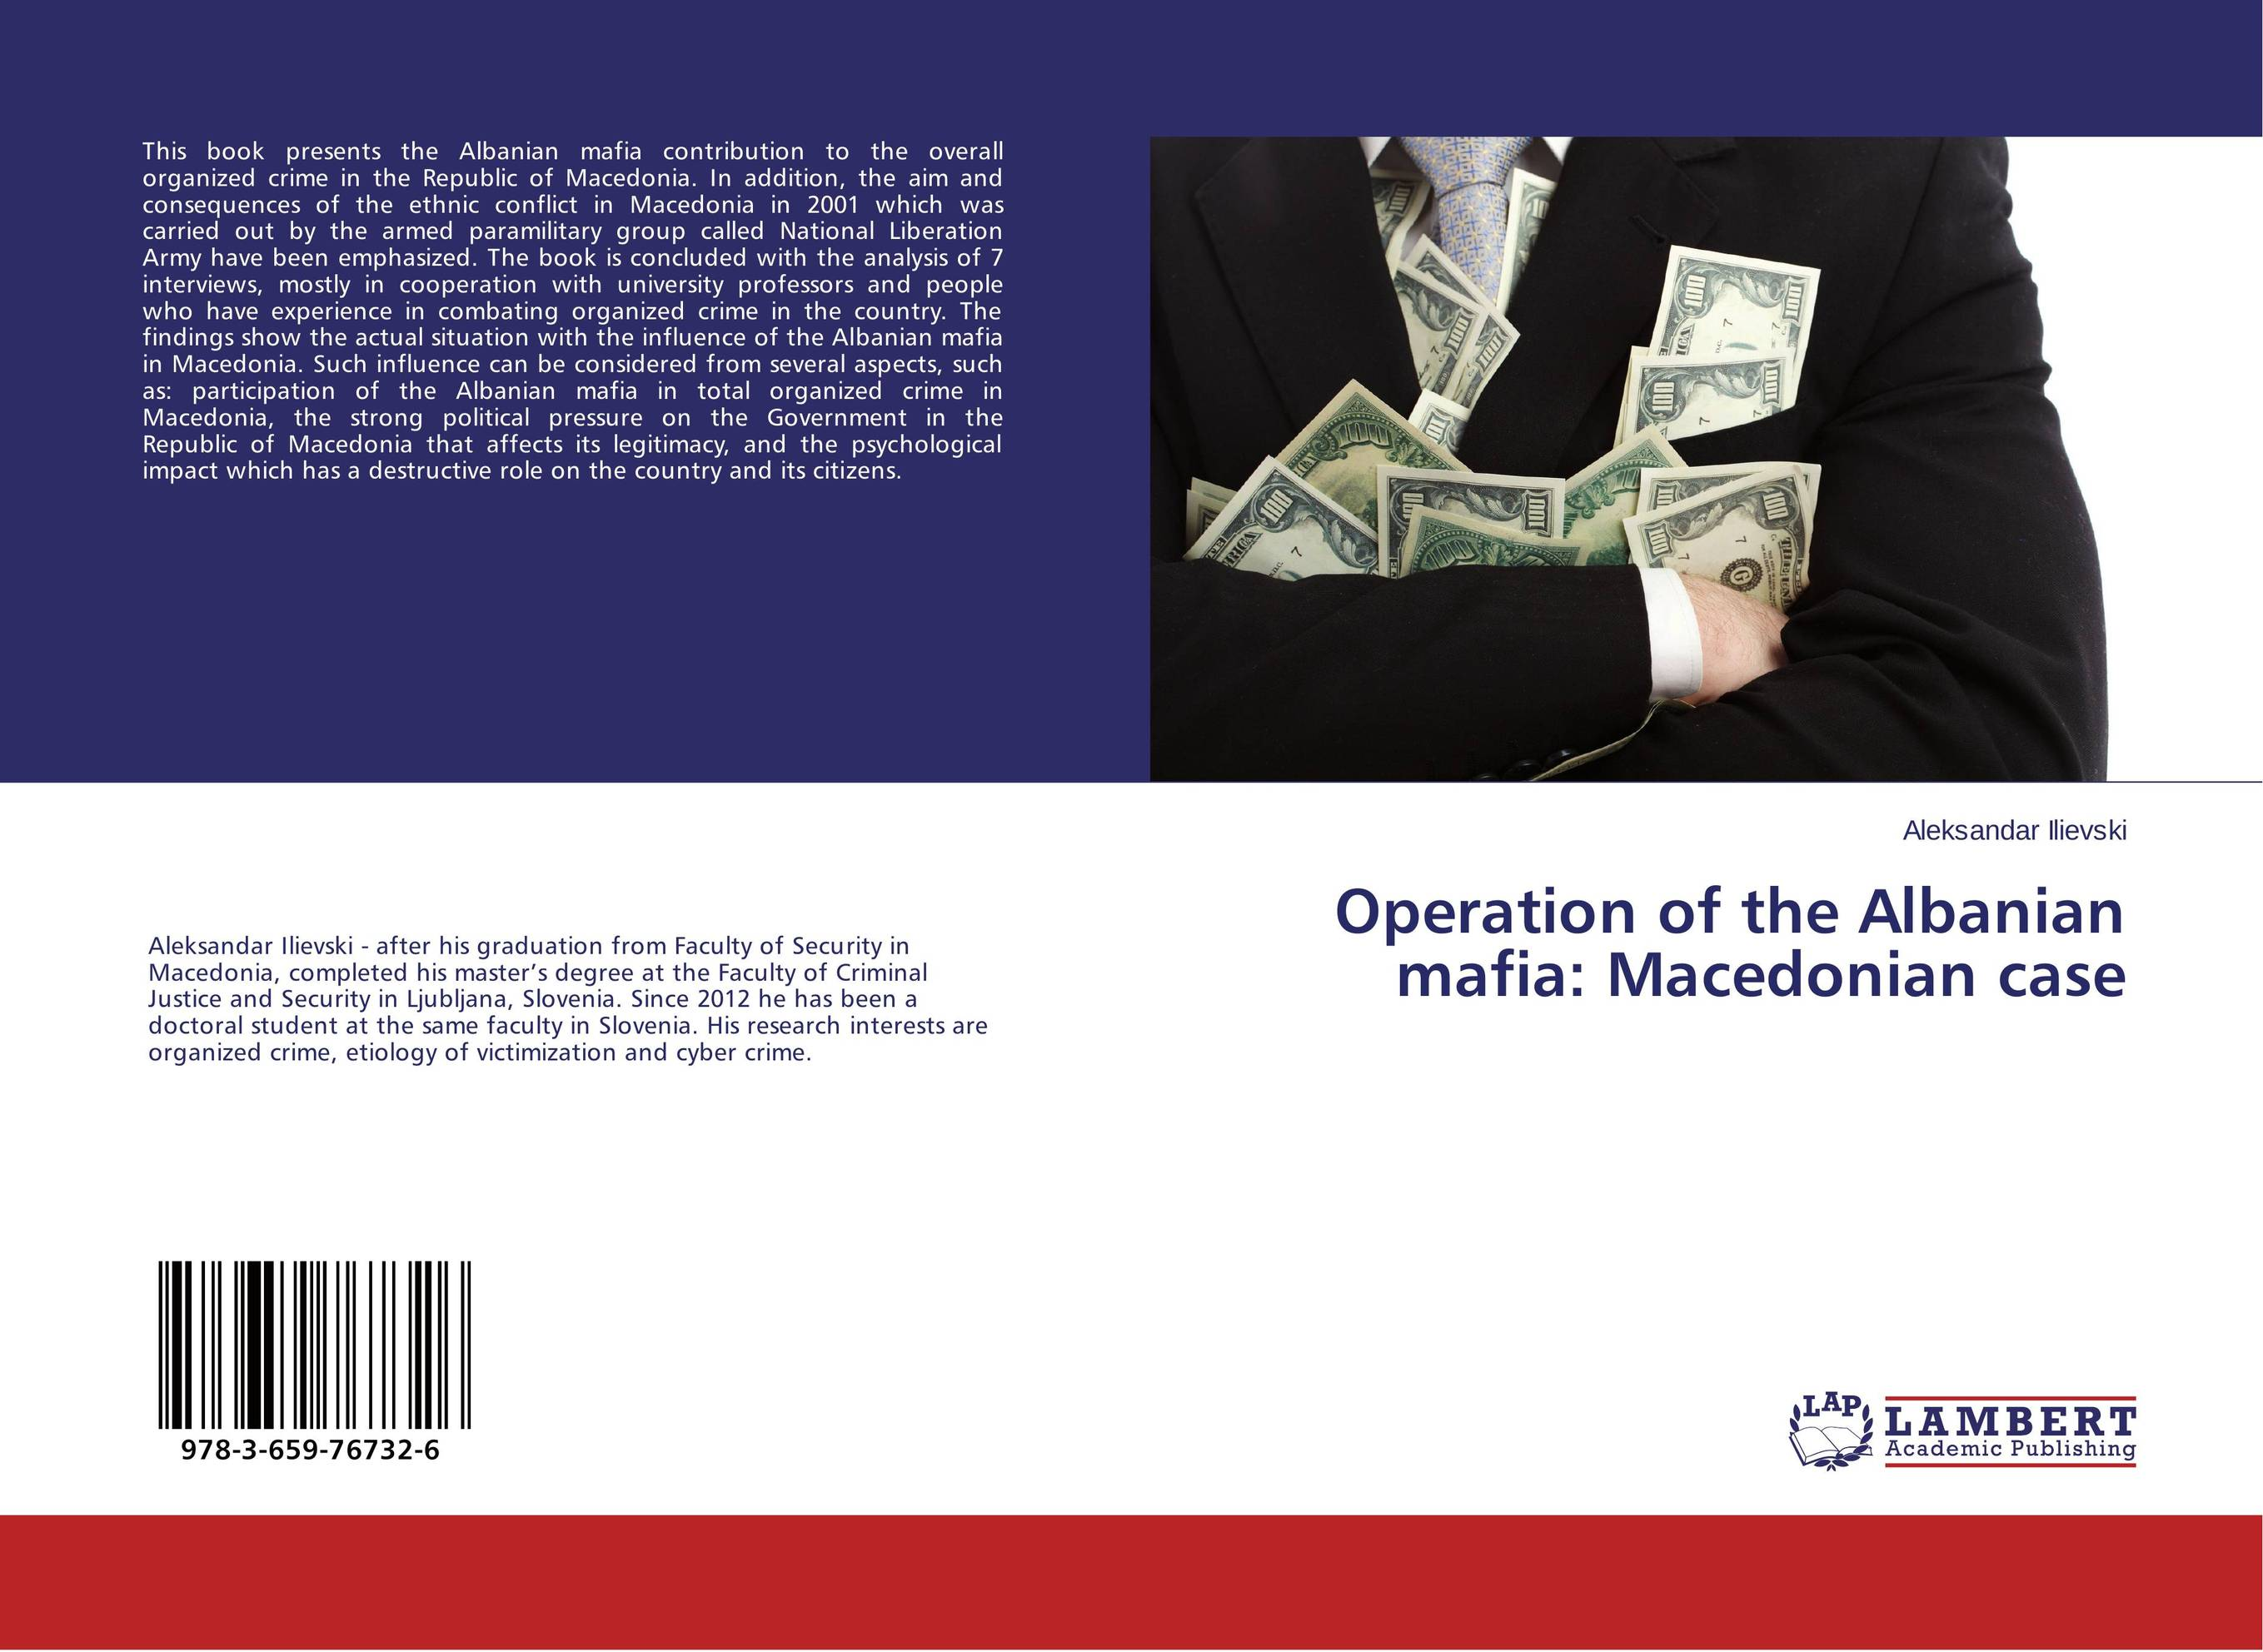 Operation of the Albanian mafia: Macedonian case